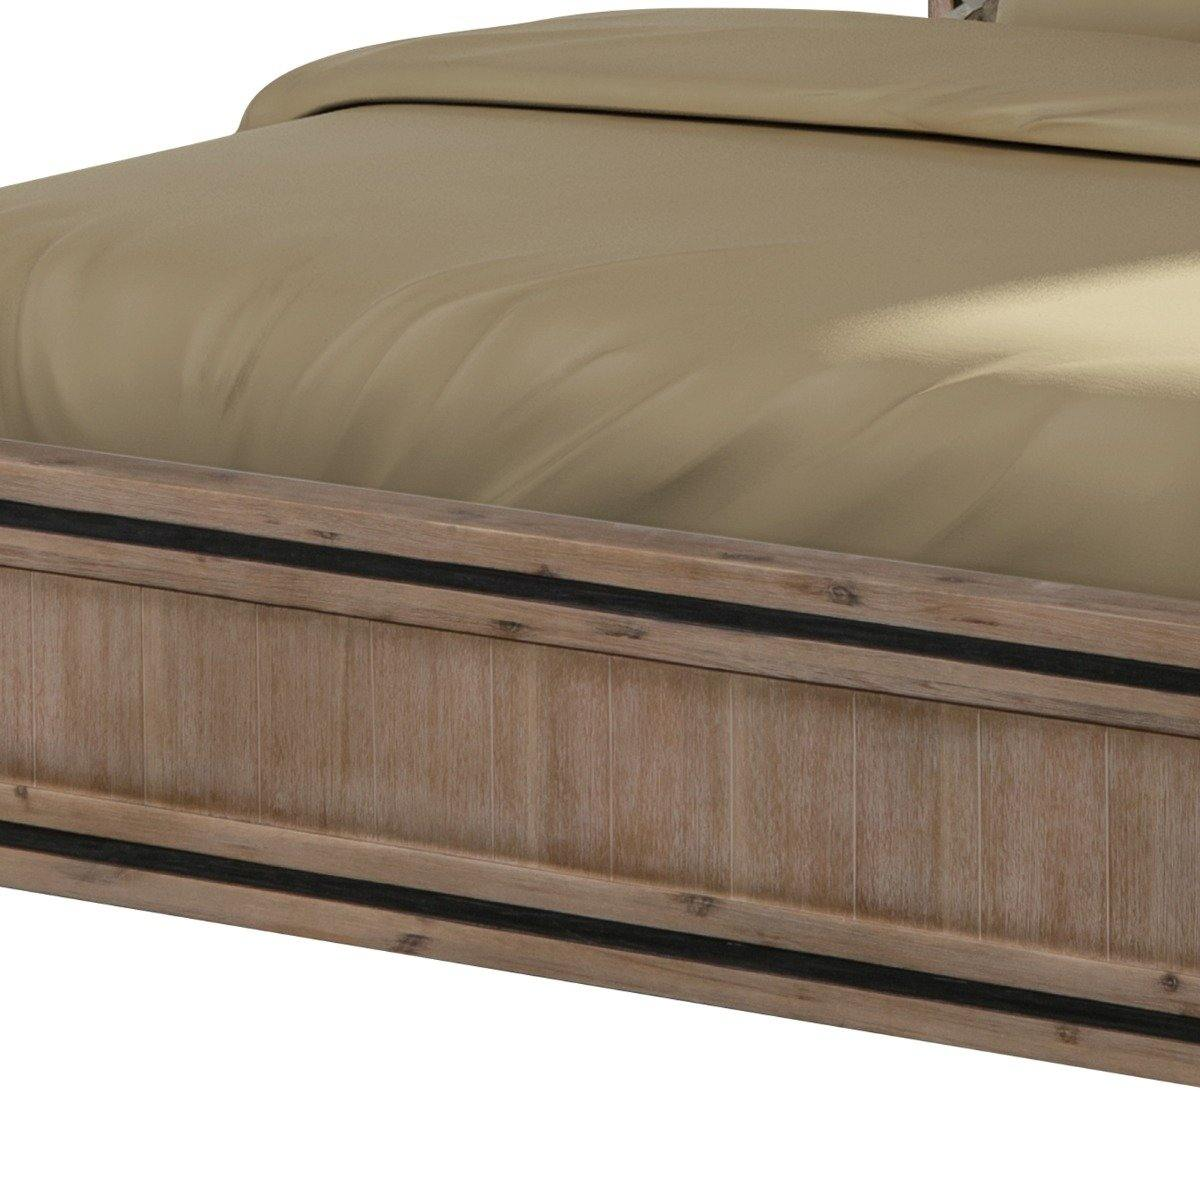 Seashore Queen Bed - Evopia